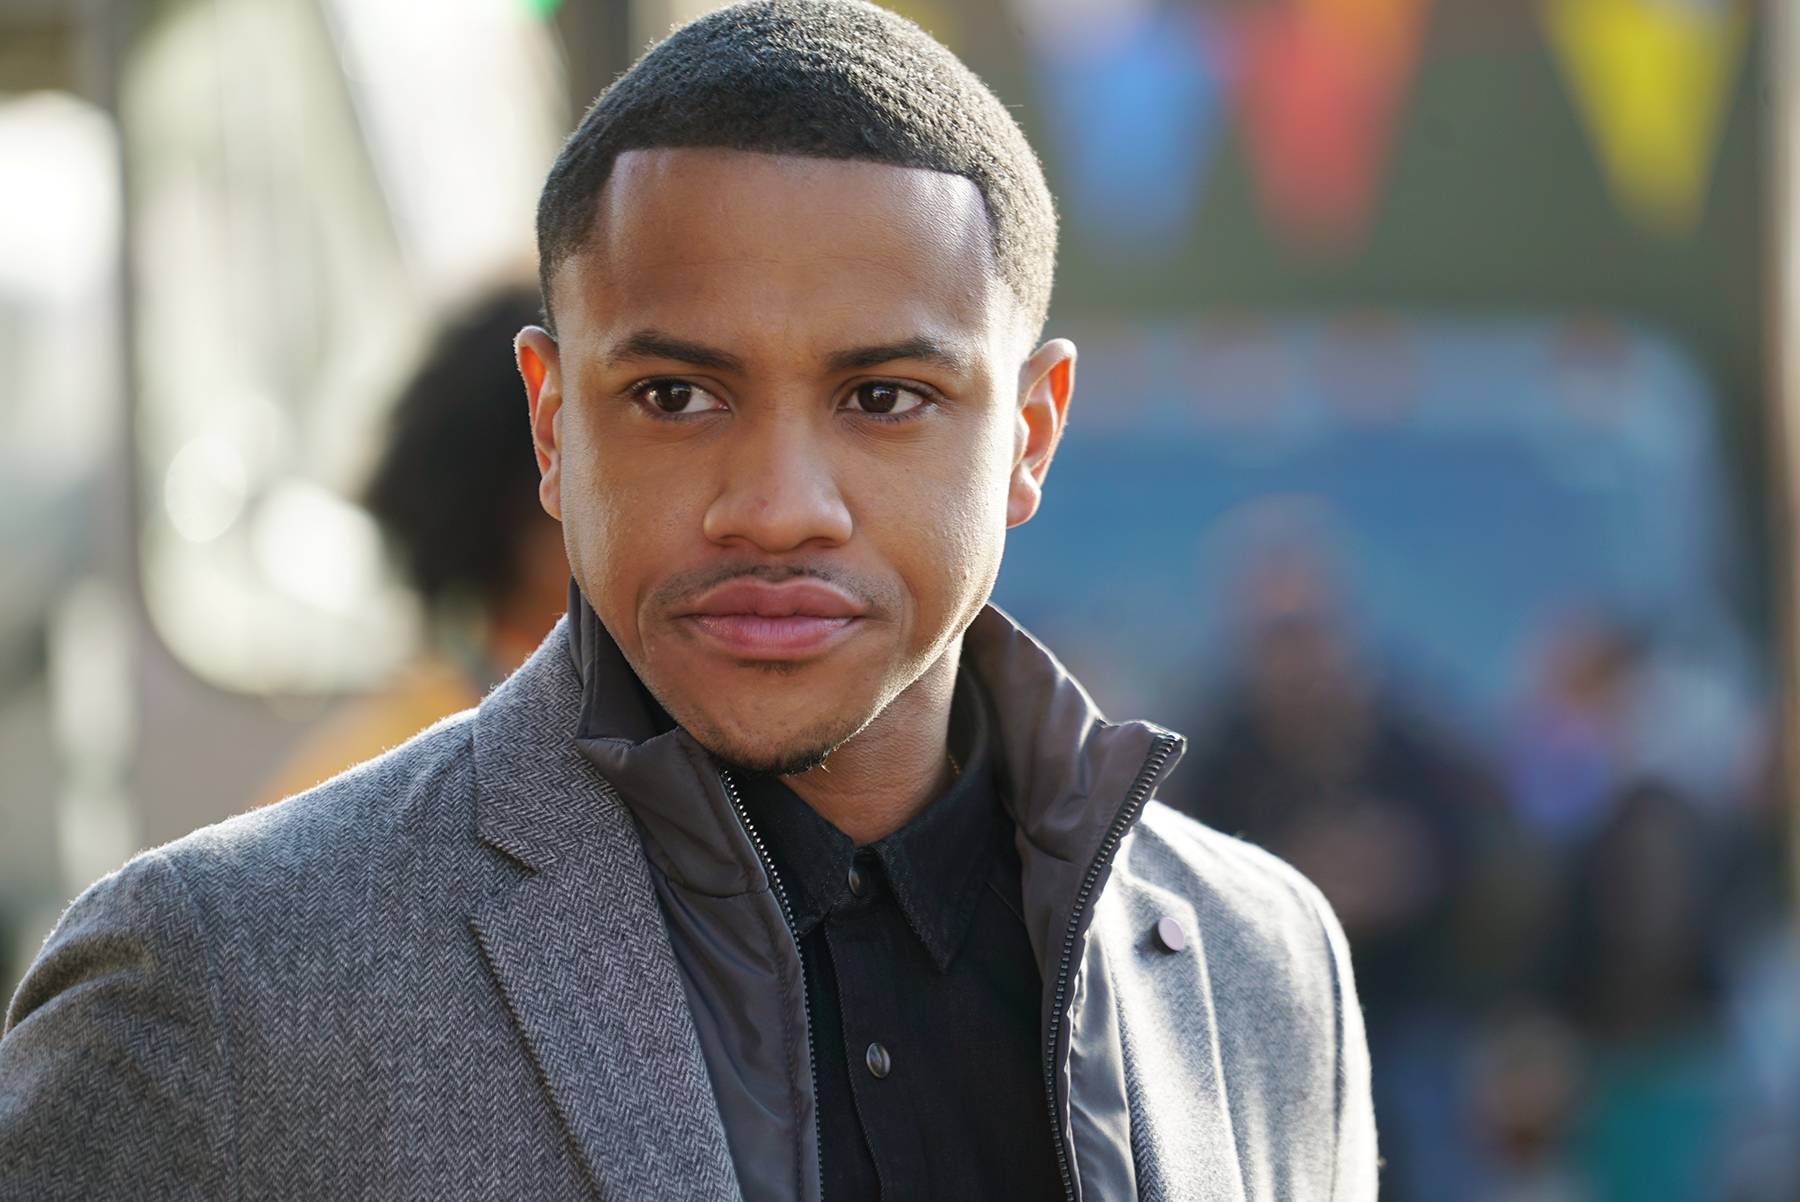 Meet the Cast of Boomerang - Tequan Richmond stars as charming Bryson Broyer.